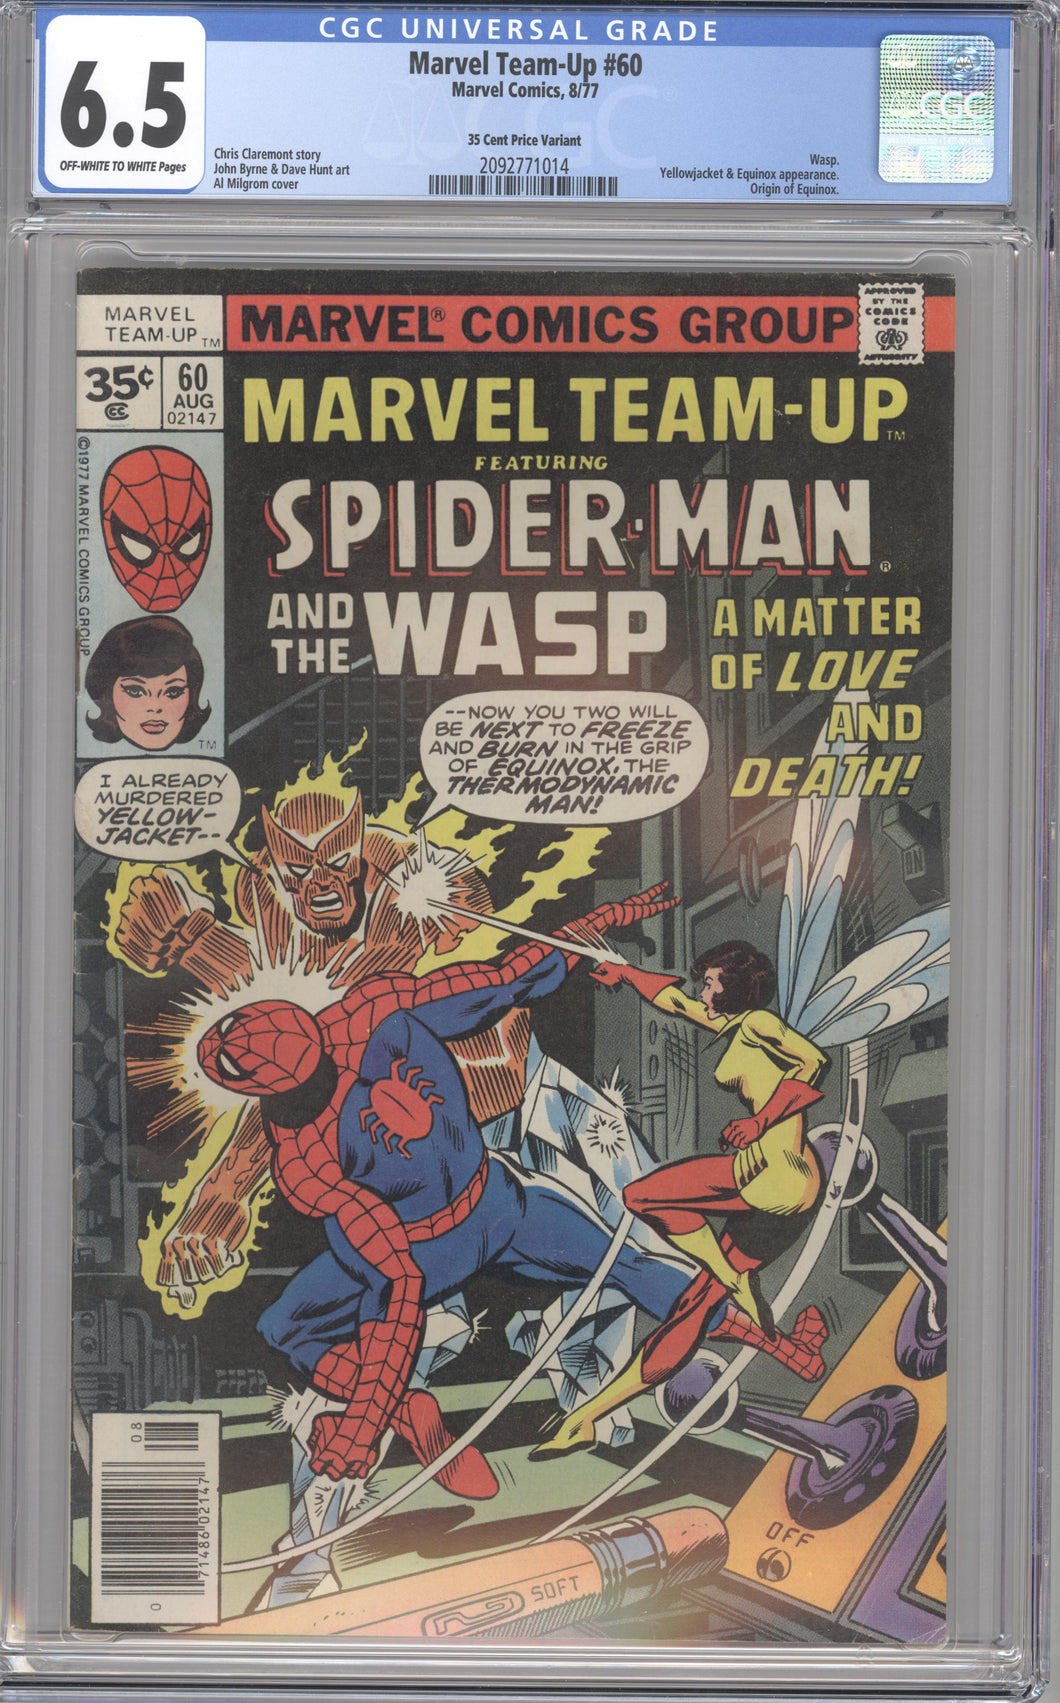 MARVEL TEAM-UP #60 CGC 6.5 F+ RARE MARVEL 35 CENT COVER PRICE VARIANT 1977